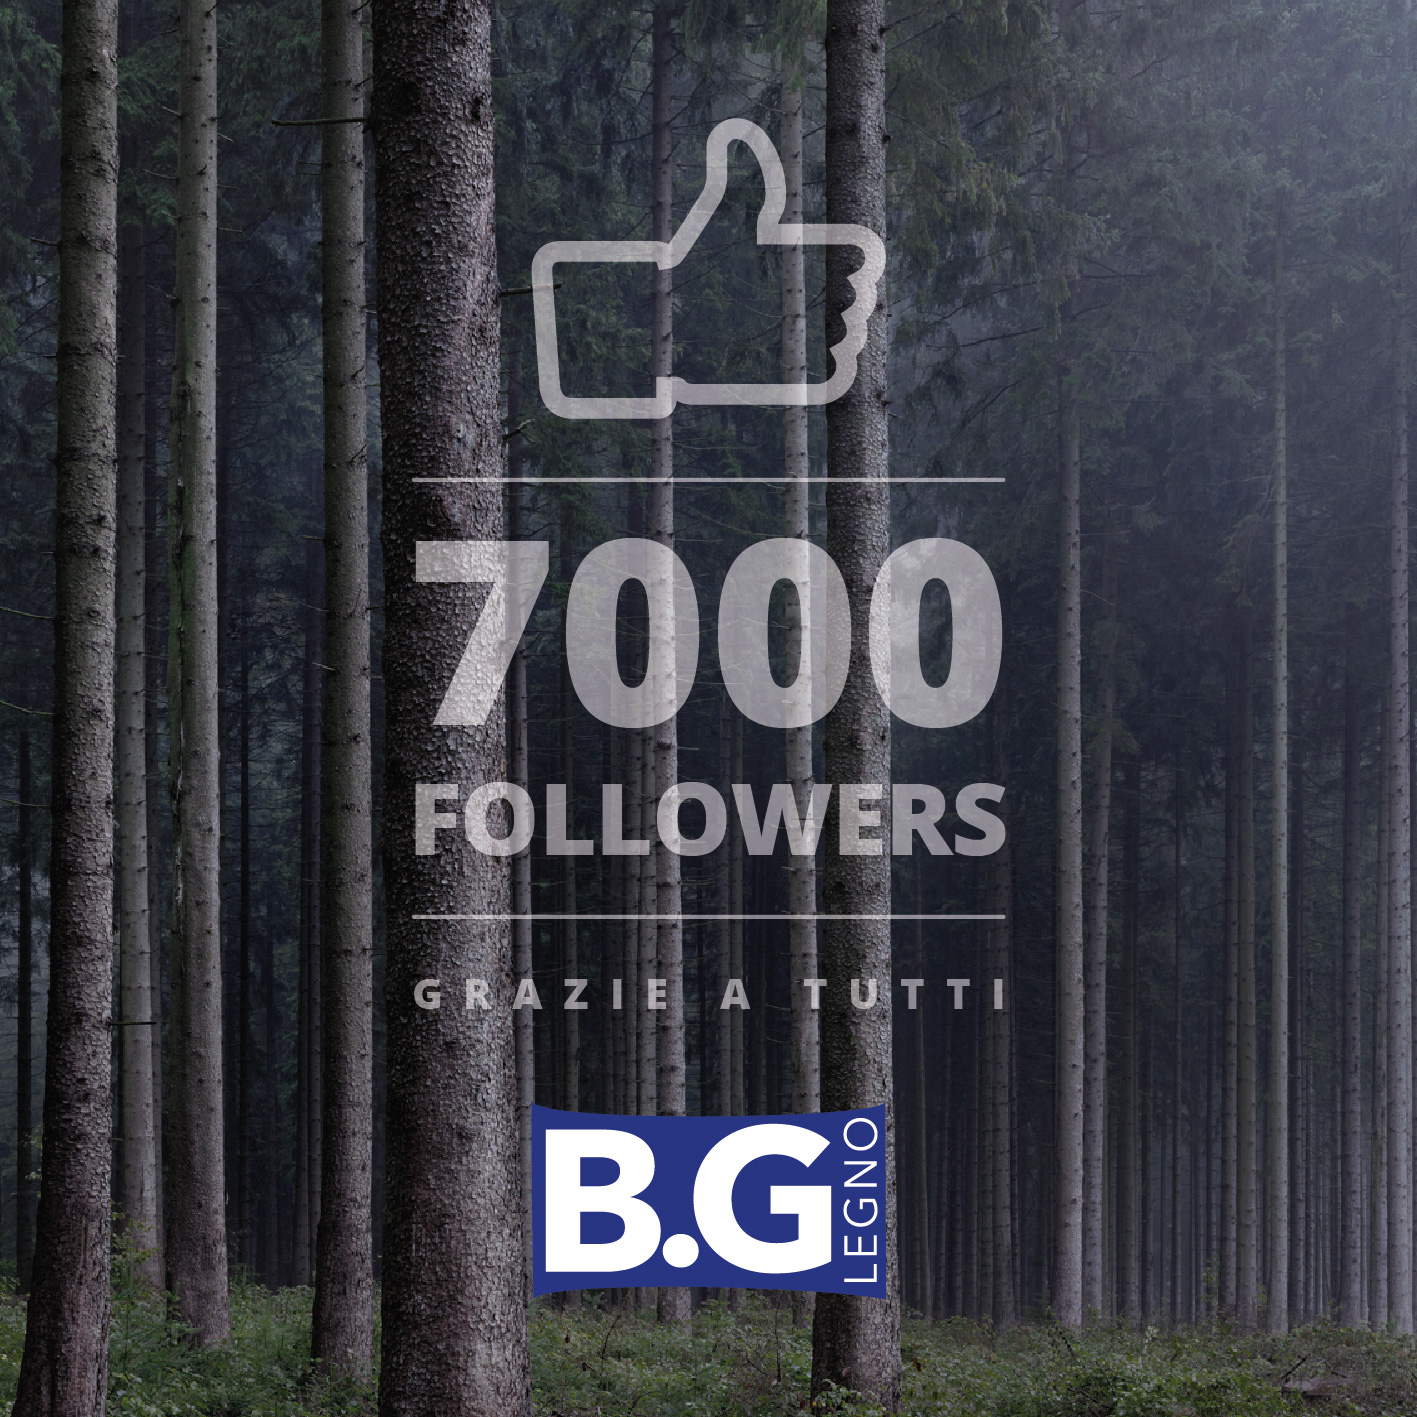 7000 followers su Facebook